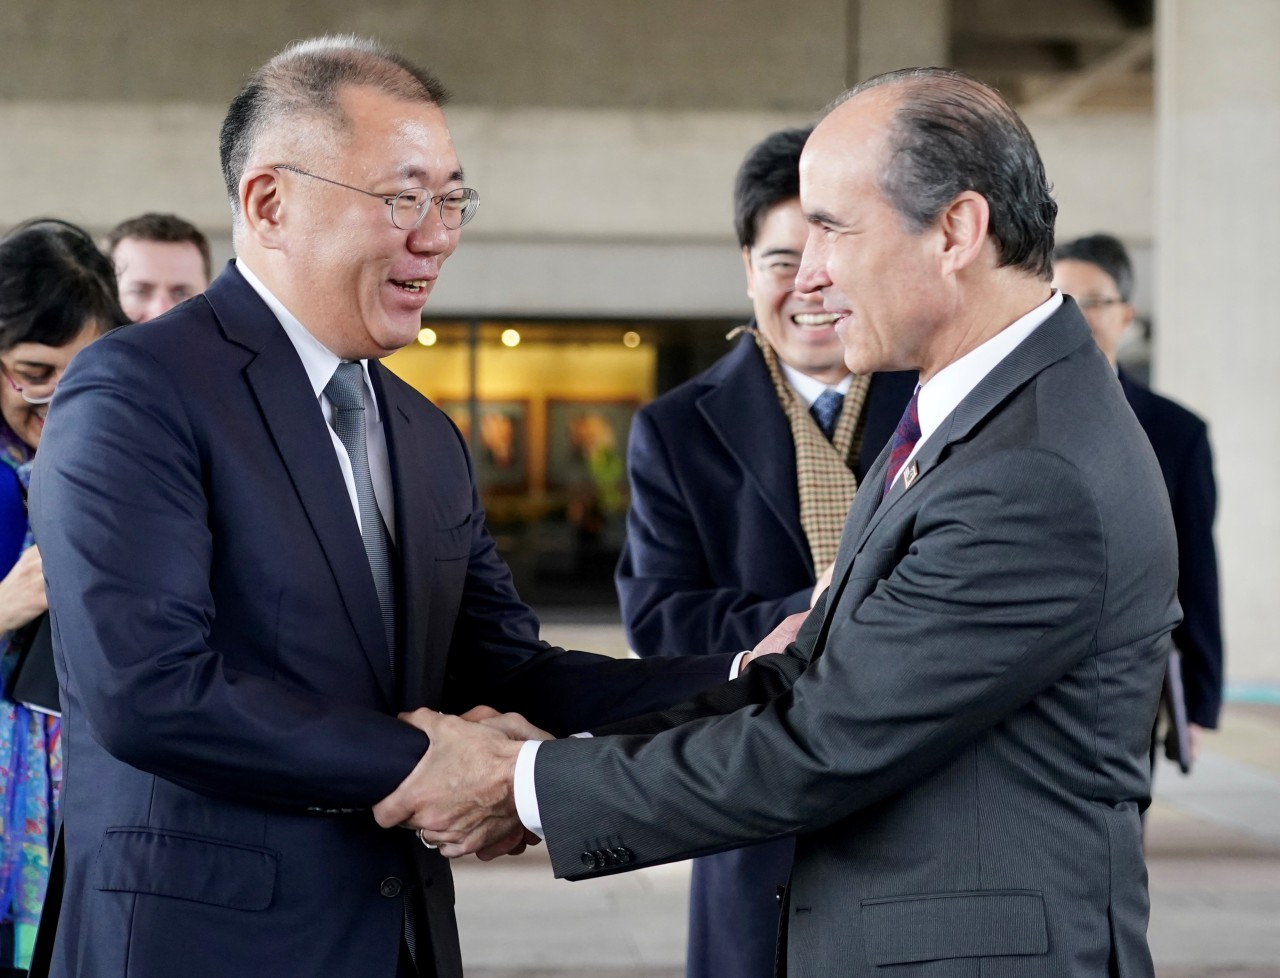 Hyundai Motor Group Executive Vice Chairman Chung Euisun (left) shakes hands with US Secretary of Energy Mark W. Menezes after signing a memorandum of understanding in Washington, DC, on Monday local time. (Hyundai Motor Group)